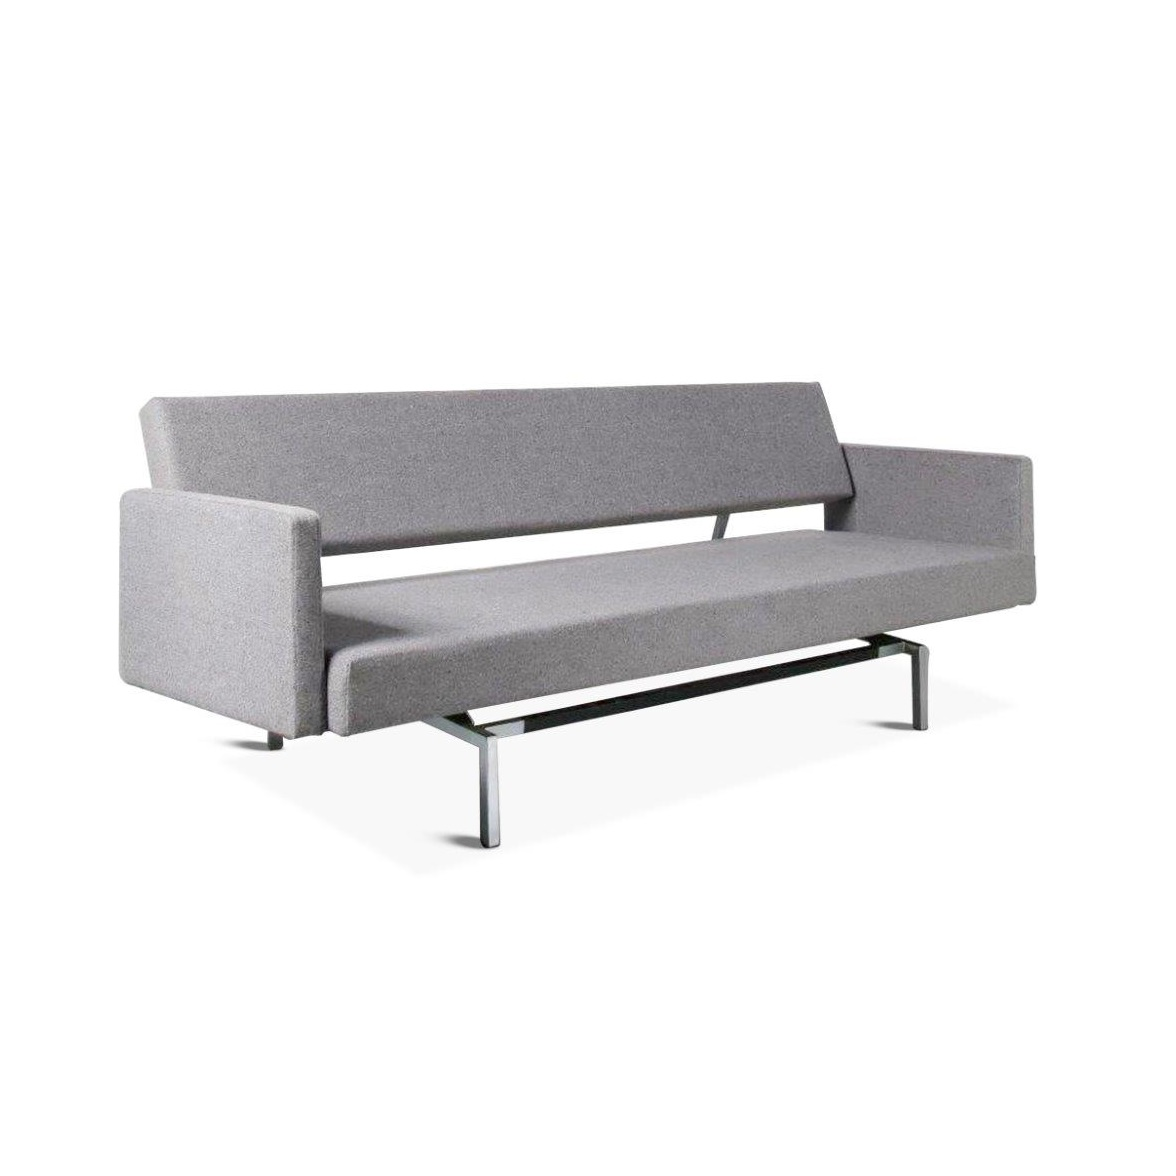 m23821 1960s 3-Seater sofa / sleeping bench on square chrome with black metal base with armrest, new dark grey Fleck Basalt upholstery Martin Visser Spectrum / Netherlands